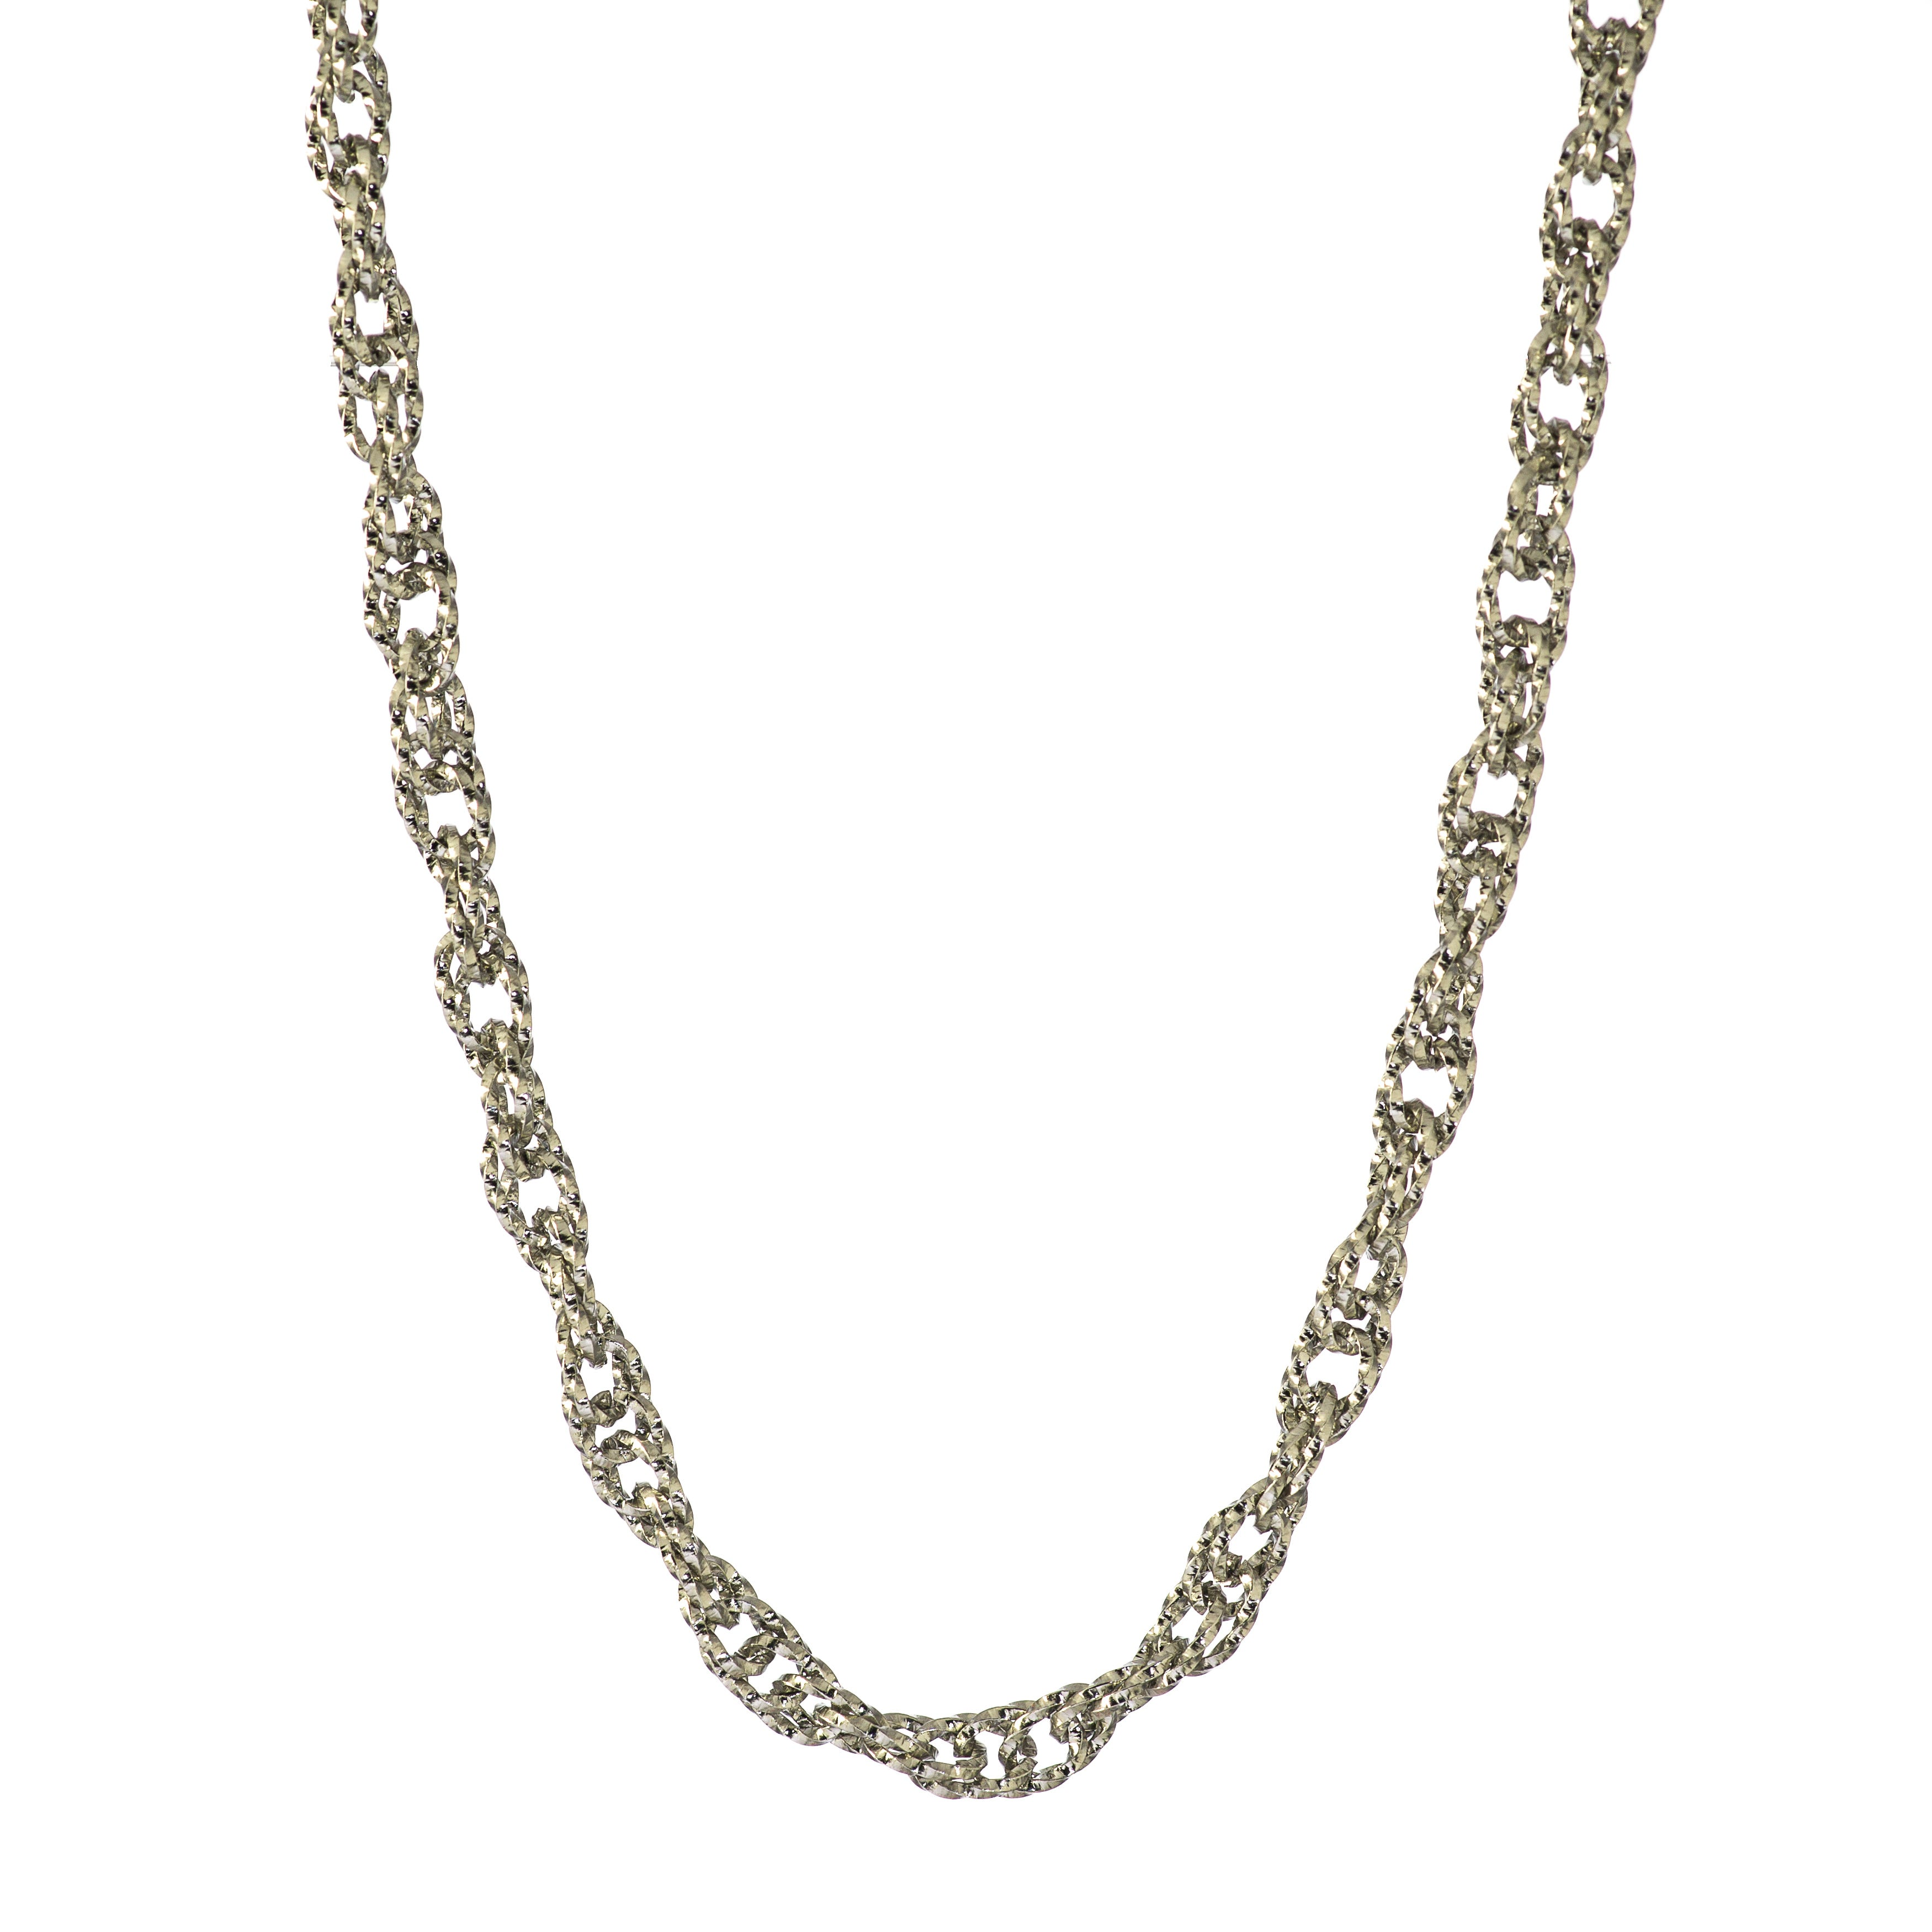 Cable Chain Fashion Necklace Stainless Steel